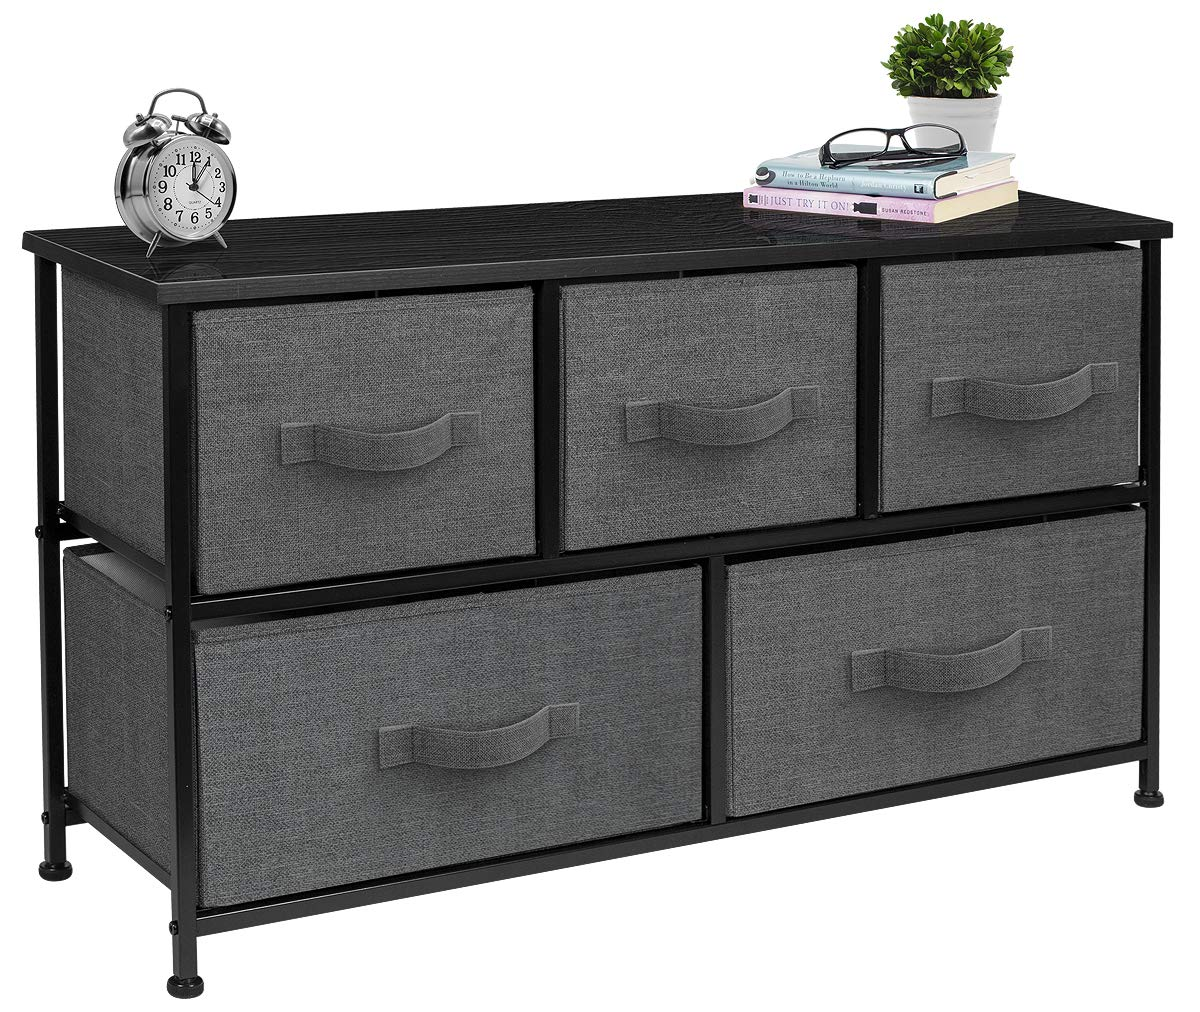 Sorbus Dresser with Drawers - Furniture Storage Tower Unit for Bedroom, Hallway, Closet, Office Organization - Steel Frame, Wood Top, Easy Pull Fabric Bins (5-Drawer, Black/Charcoal)